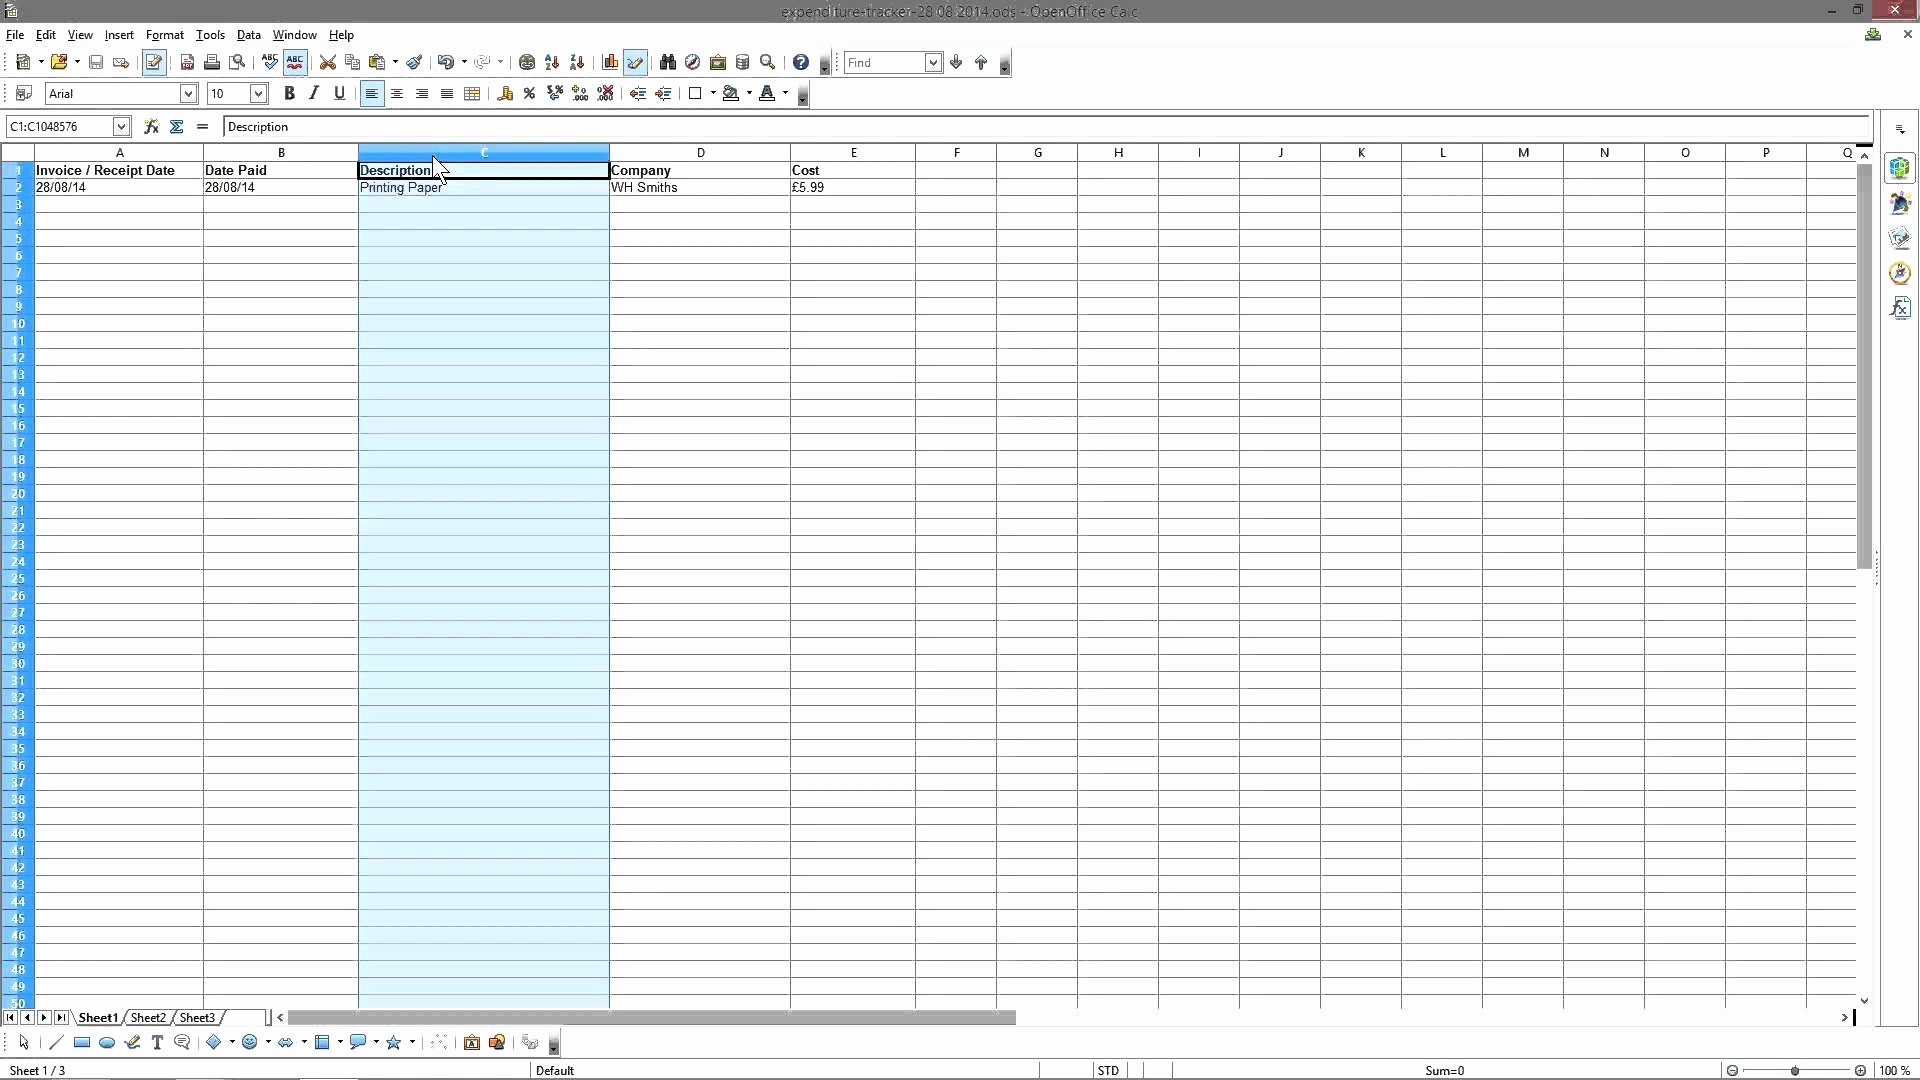 Excel Template For Small Business Bookkeeping Spreadsheet Examples For Spreadsheet For Small Business Bookkeeping